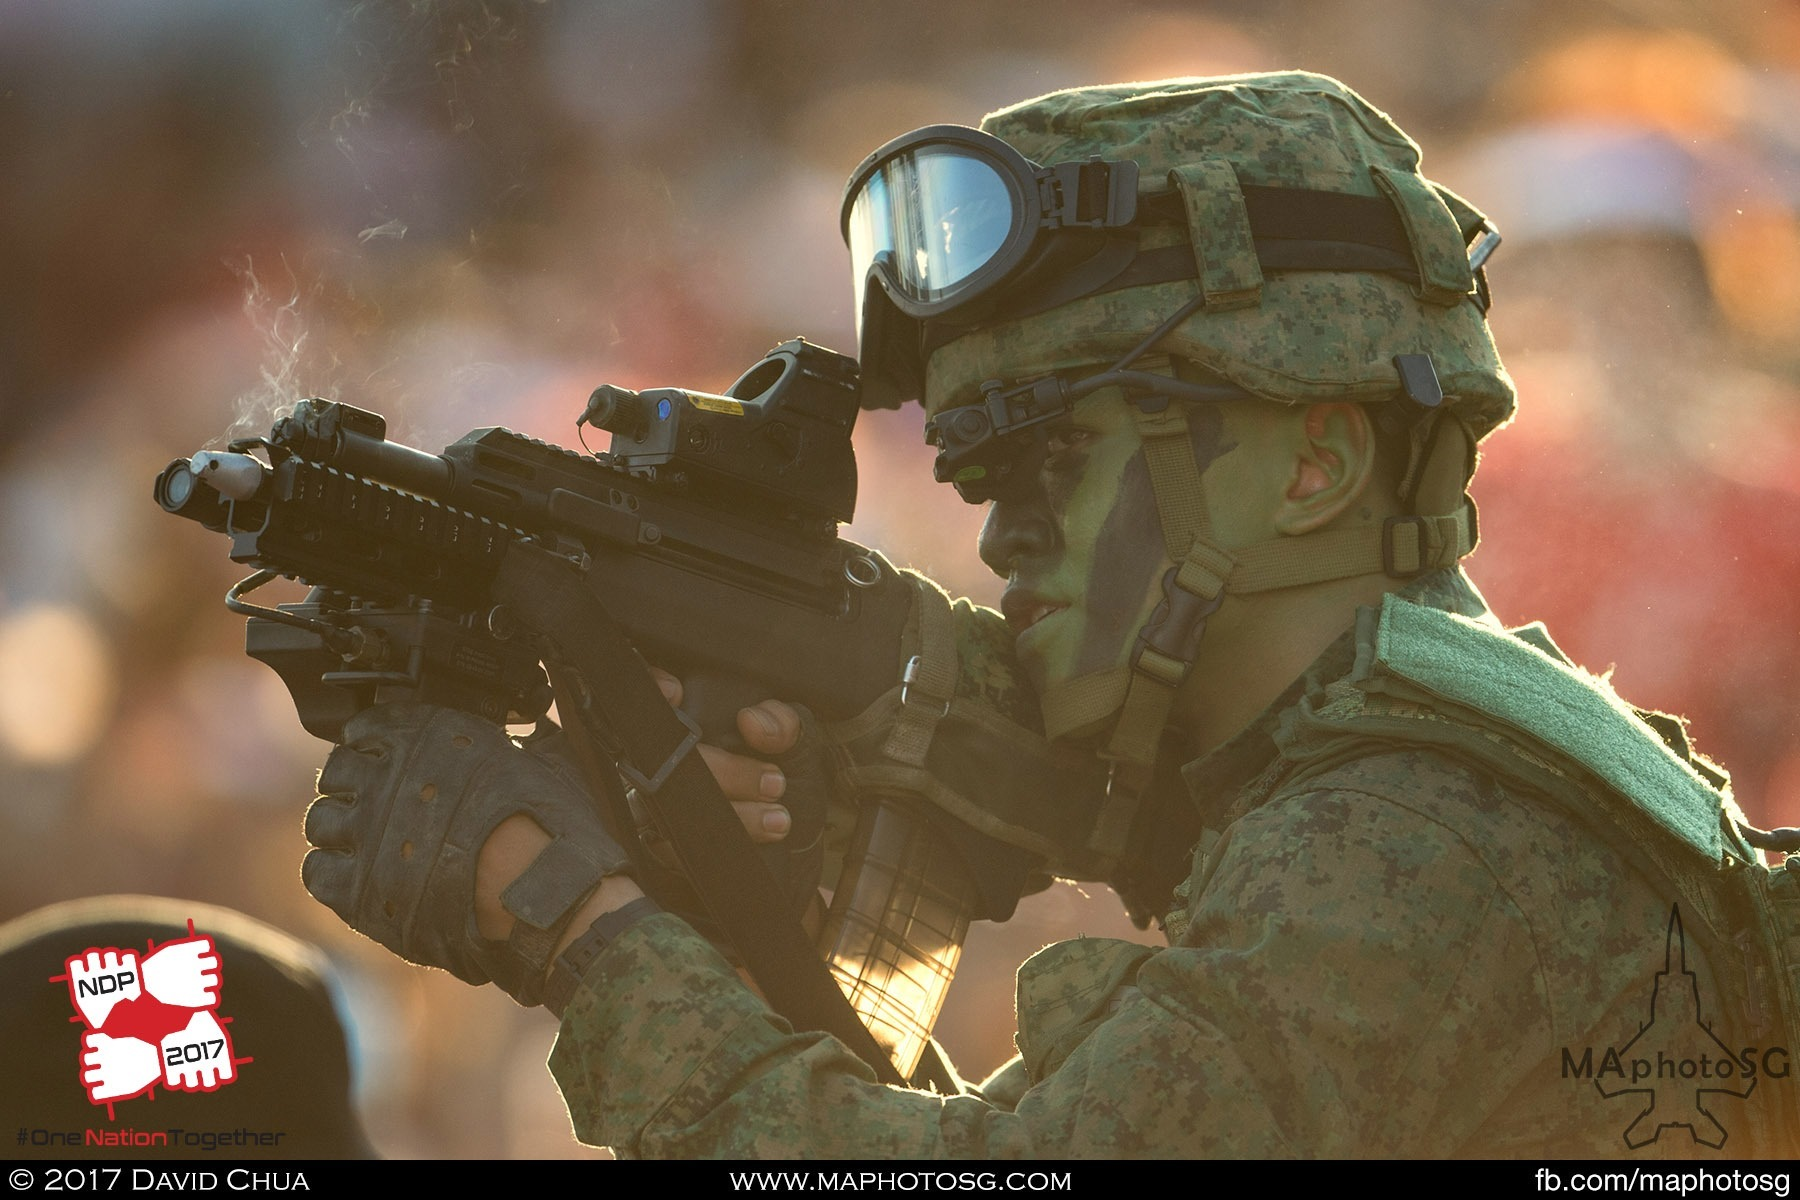 16. Infantryman from the Singapore Armed Forces in action within the spectator stands.